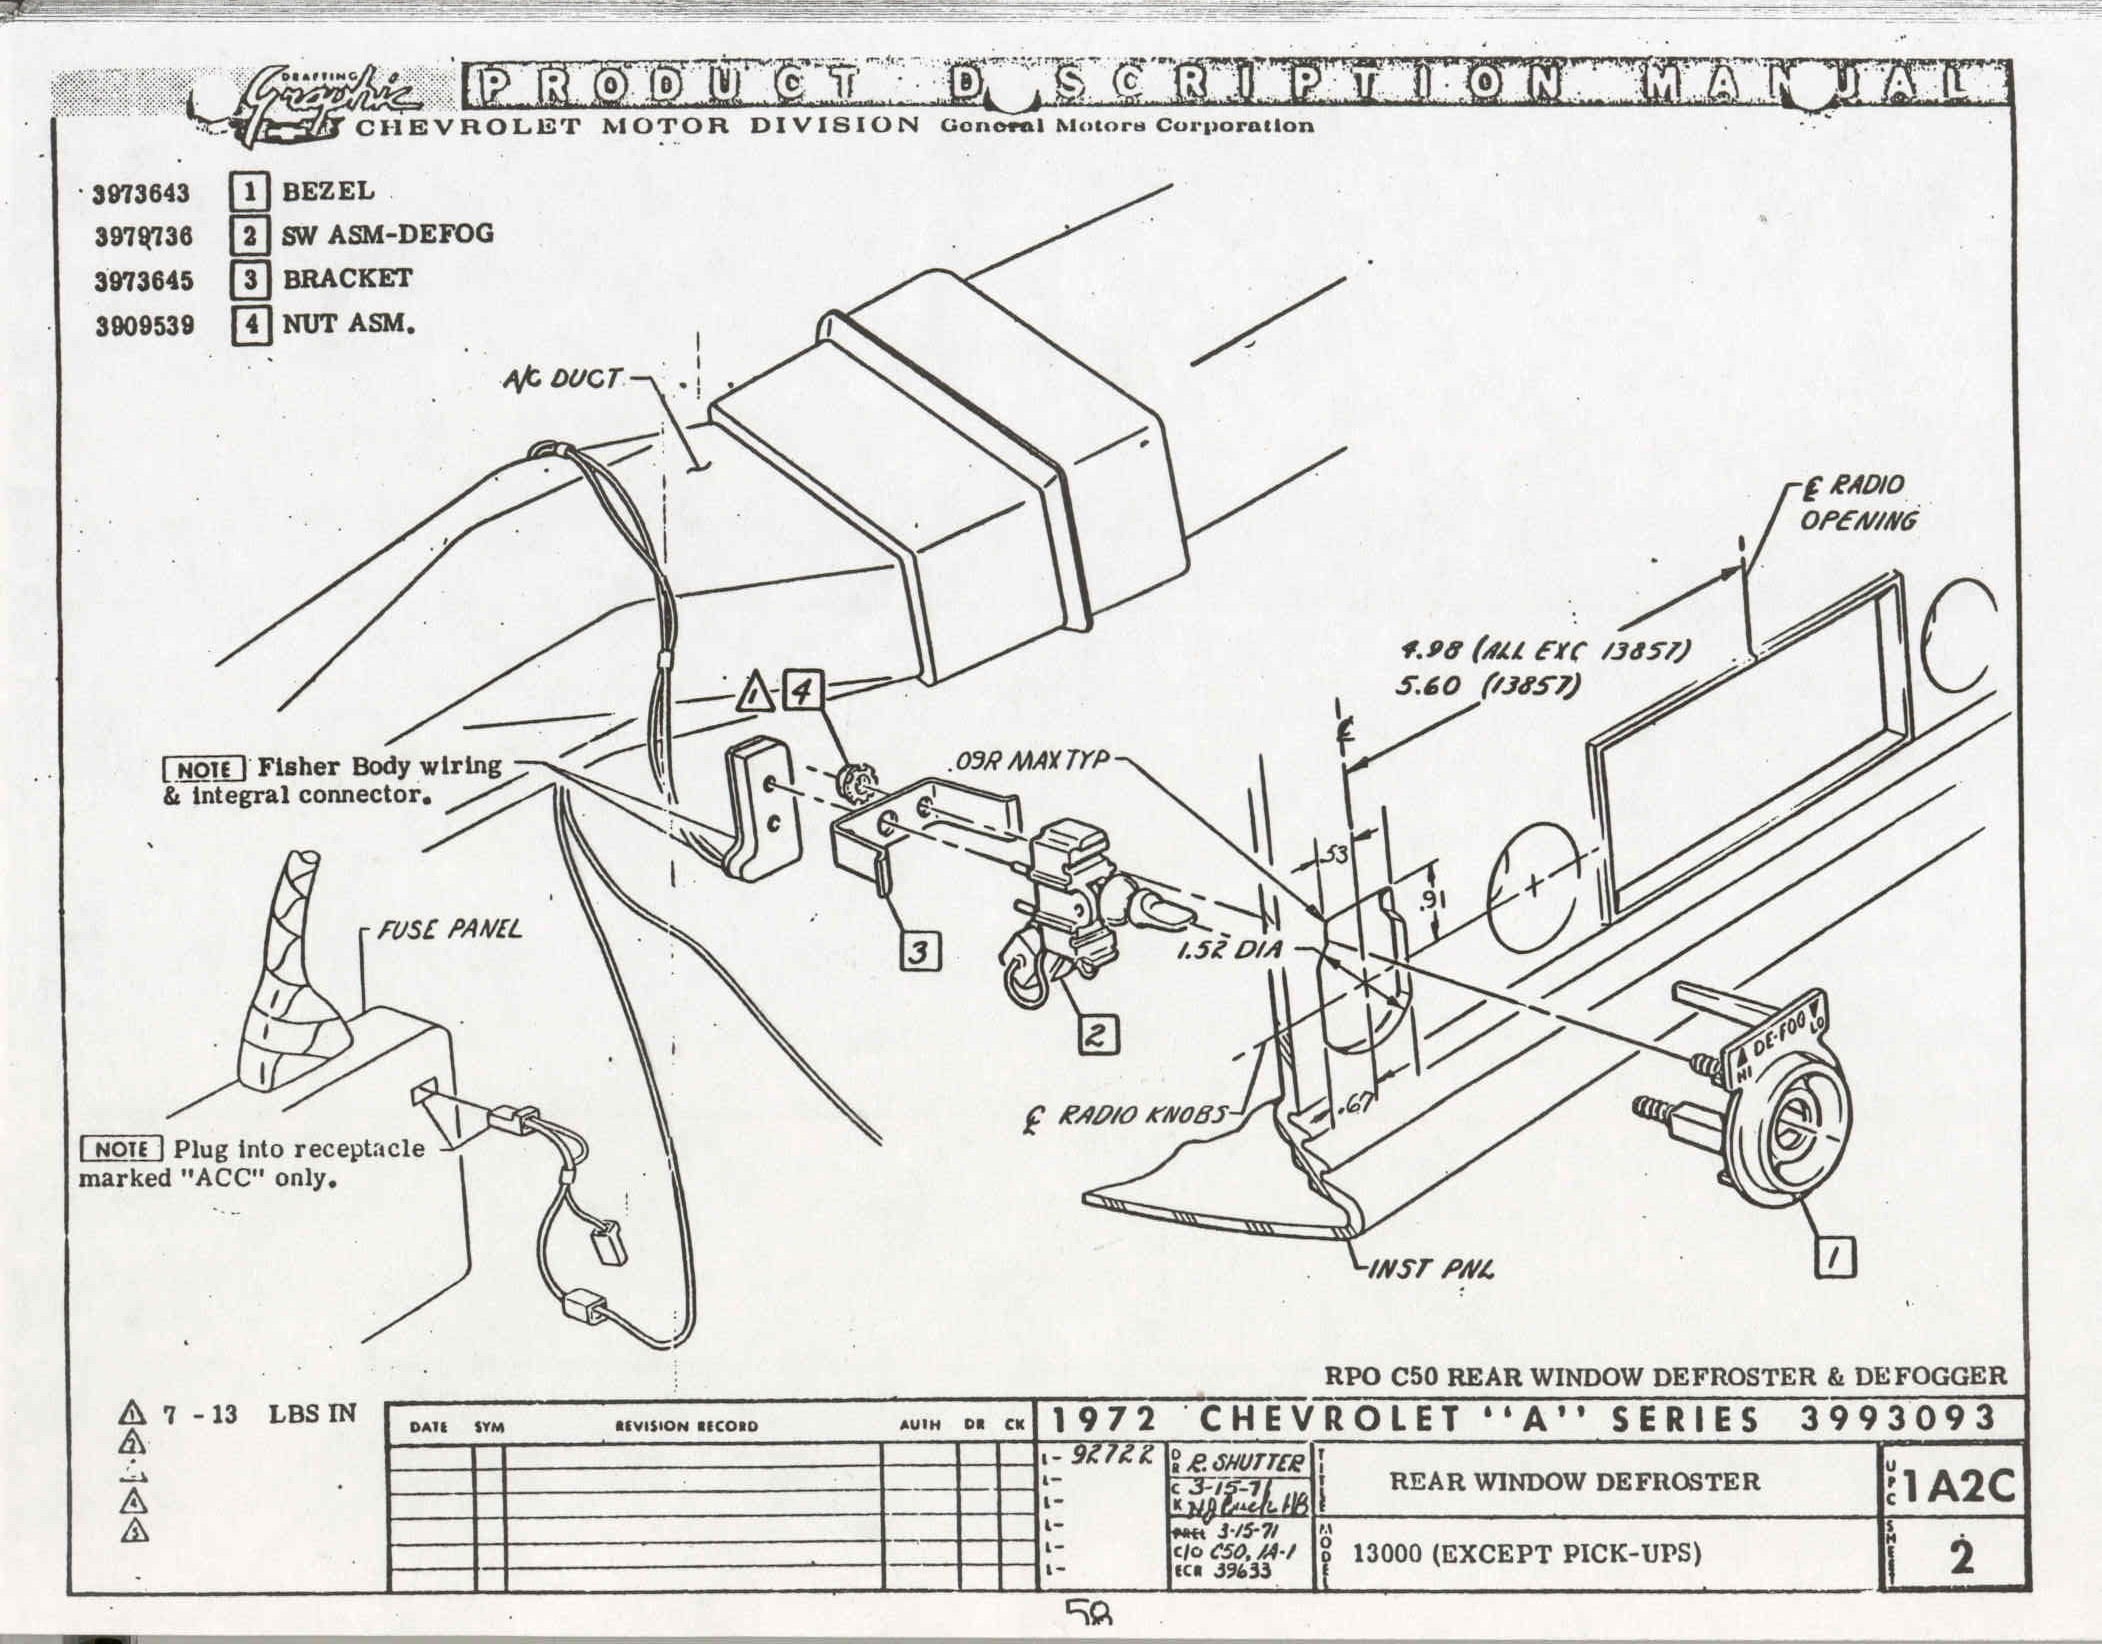 1968 camaro convertible top diagram 1 5 buchner 66 Mustang Brake Diagram 1968 camaro convertible wiring diagram wiring diagram rh 60 geschiedenisanders nl 1967 camaro convertible body parts 1968 camaro convertible top frame